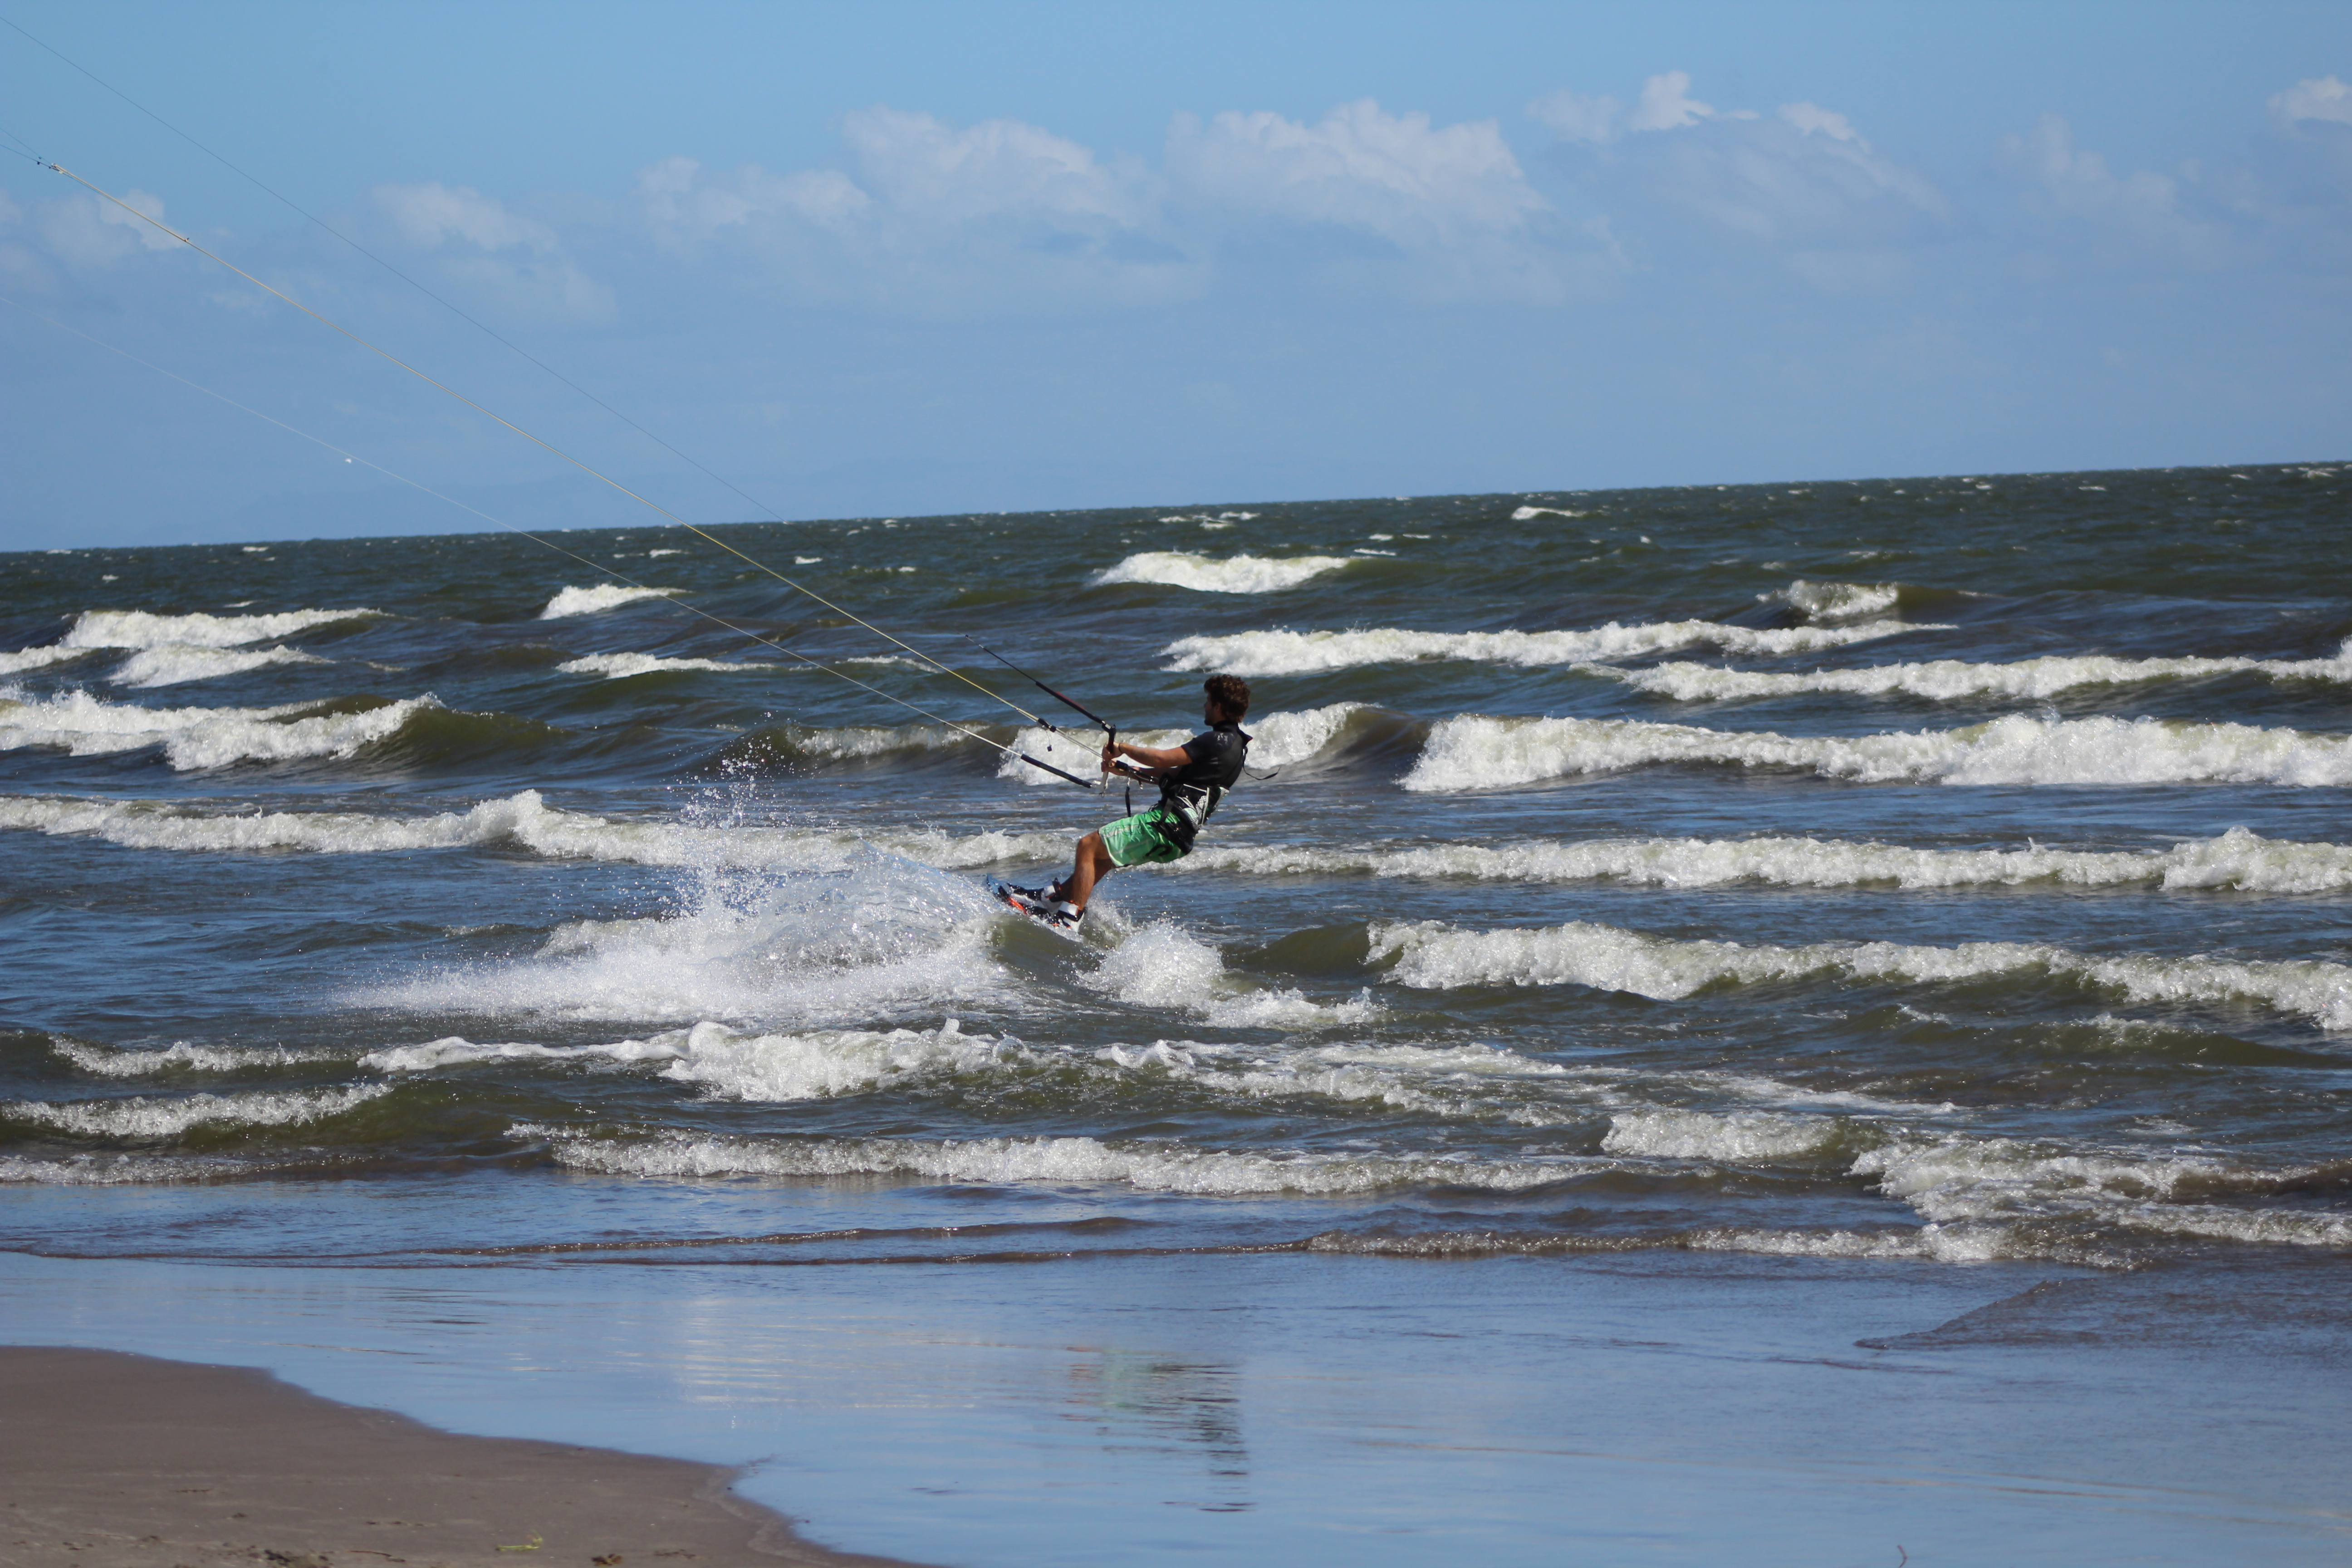 Kitesurfer on Ometepe lake